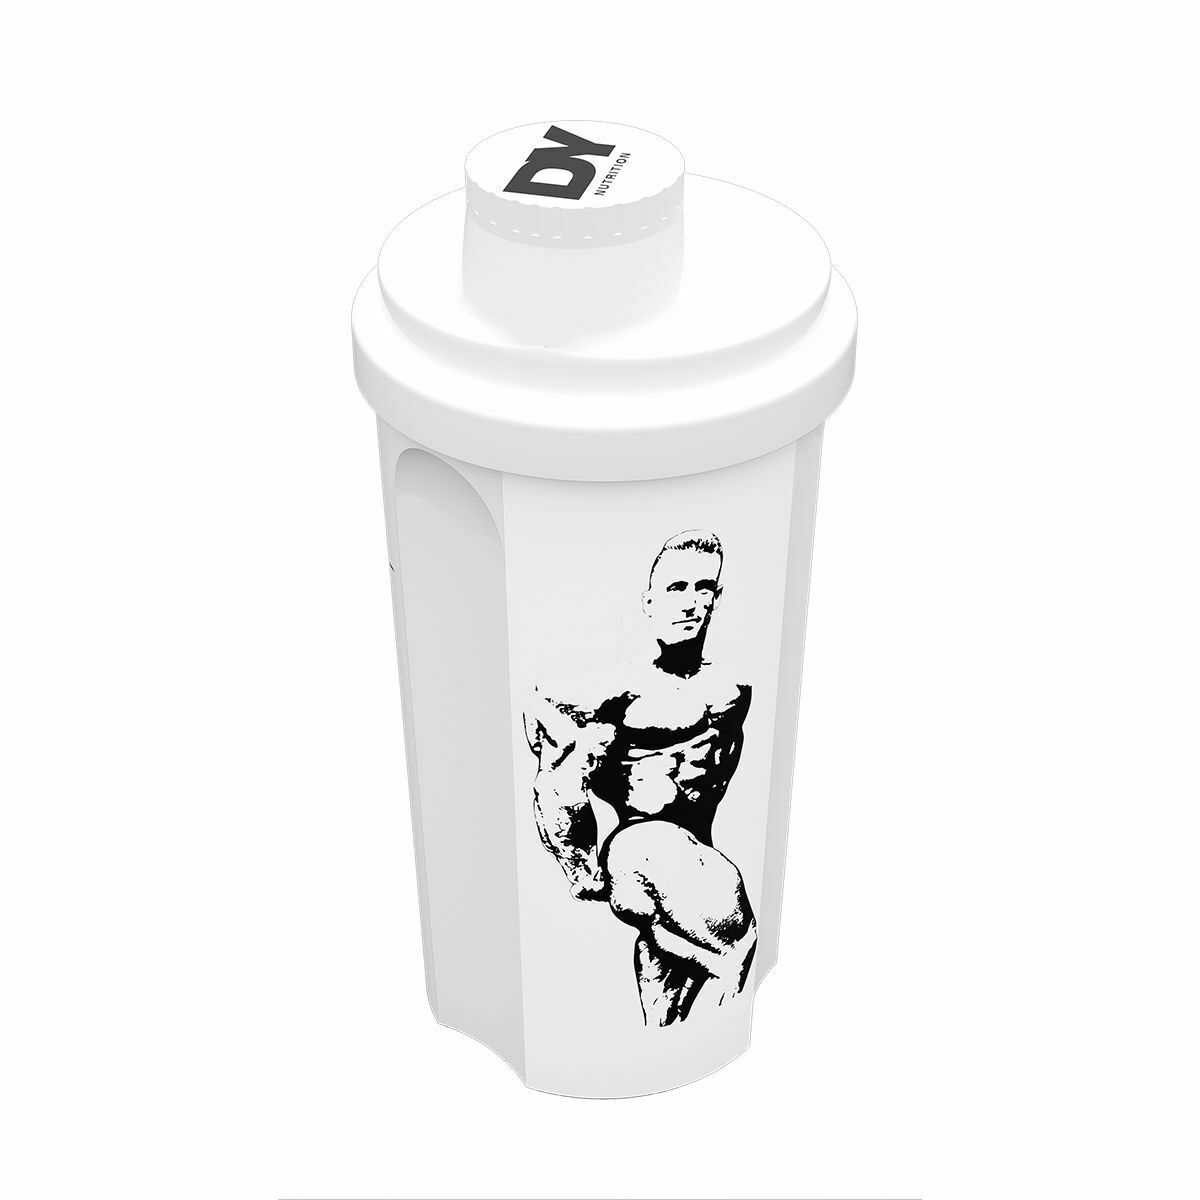 Image 4 - Dorian Yates Signature Shaker Cup DY Nutrition shaker 3 sided design in 2 colour